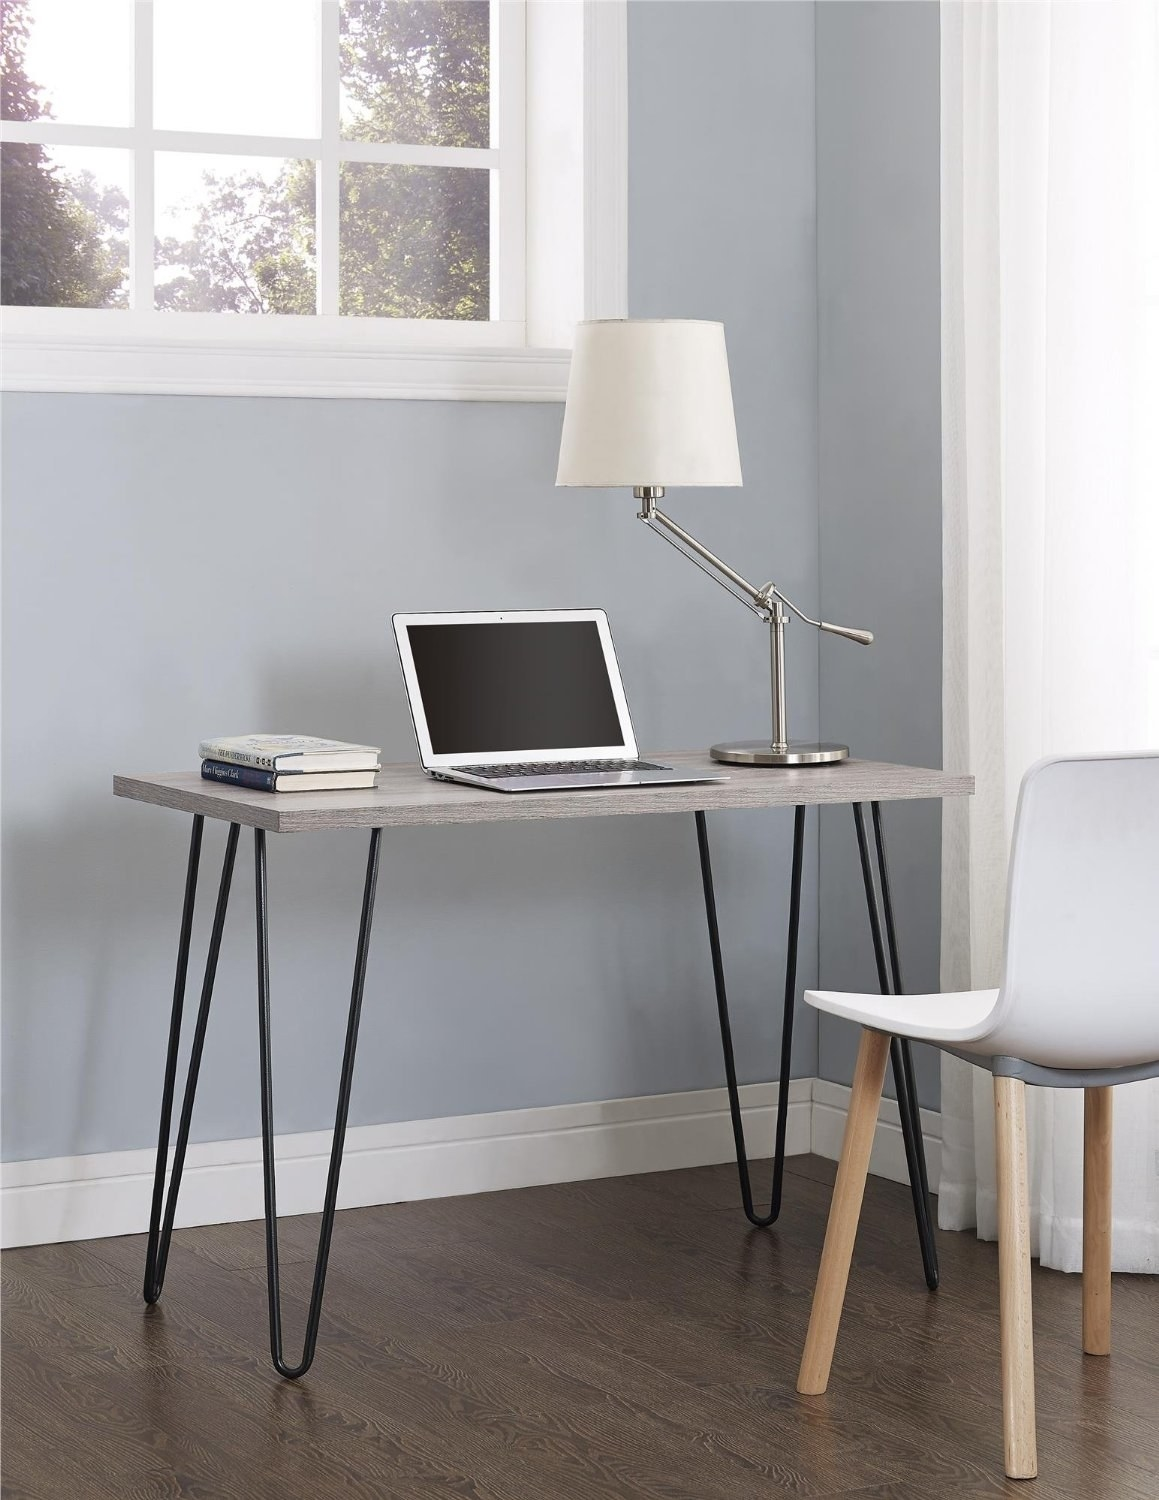 17 Of The Best Desks You Can Get On Amazon